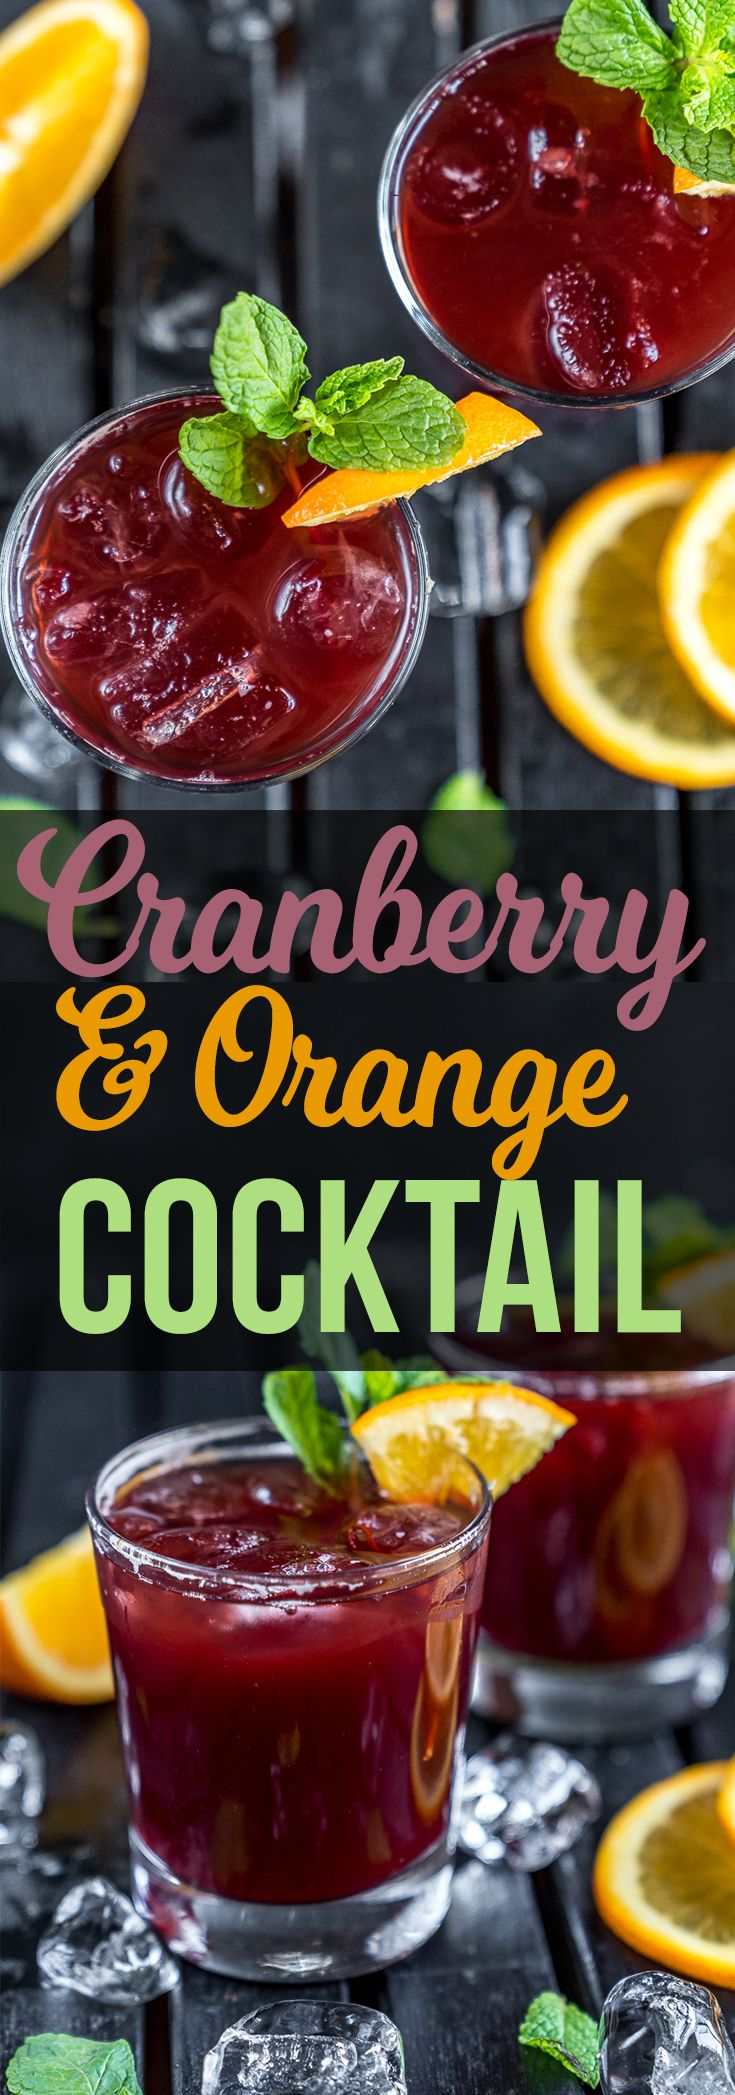 Cranberry & Orange Cocktail | Recipe | Fall recipes, New ...